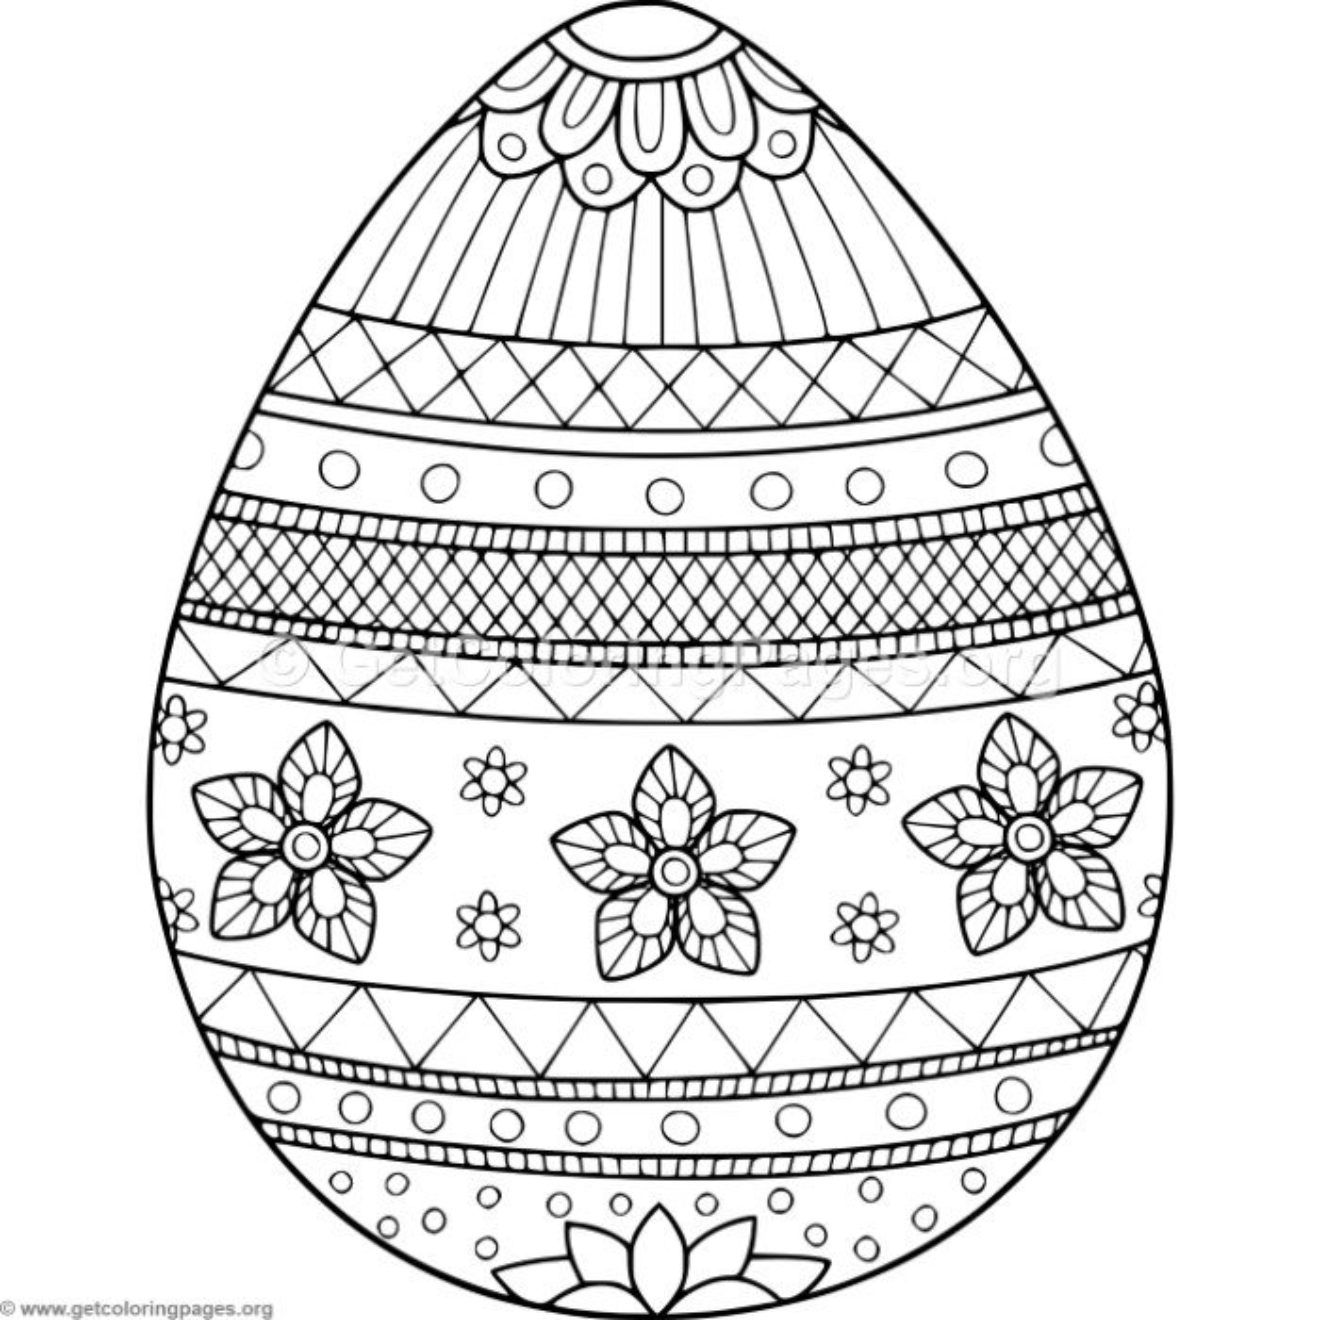 Easter Egg Coloring Pages To Print 1 Coloring Easter Eggs Egg Coloring Page Easter Egg Coloring Pages